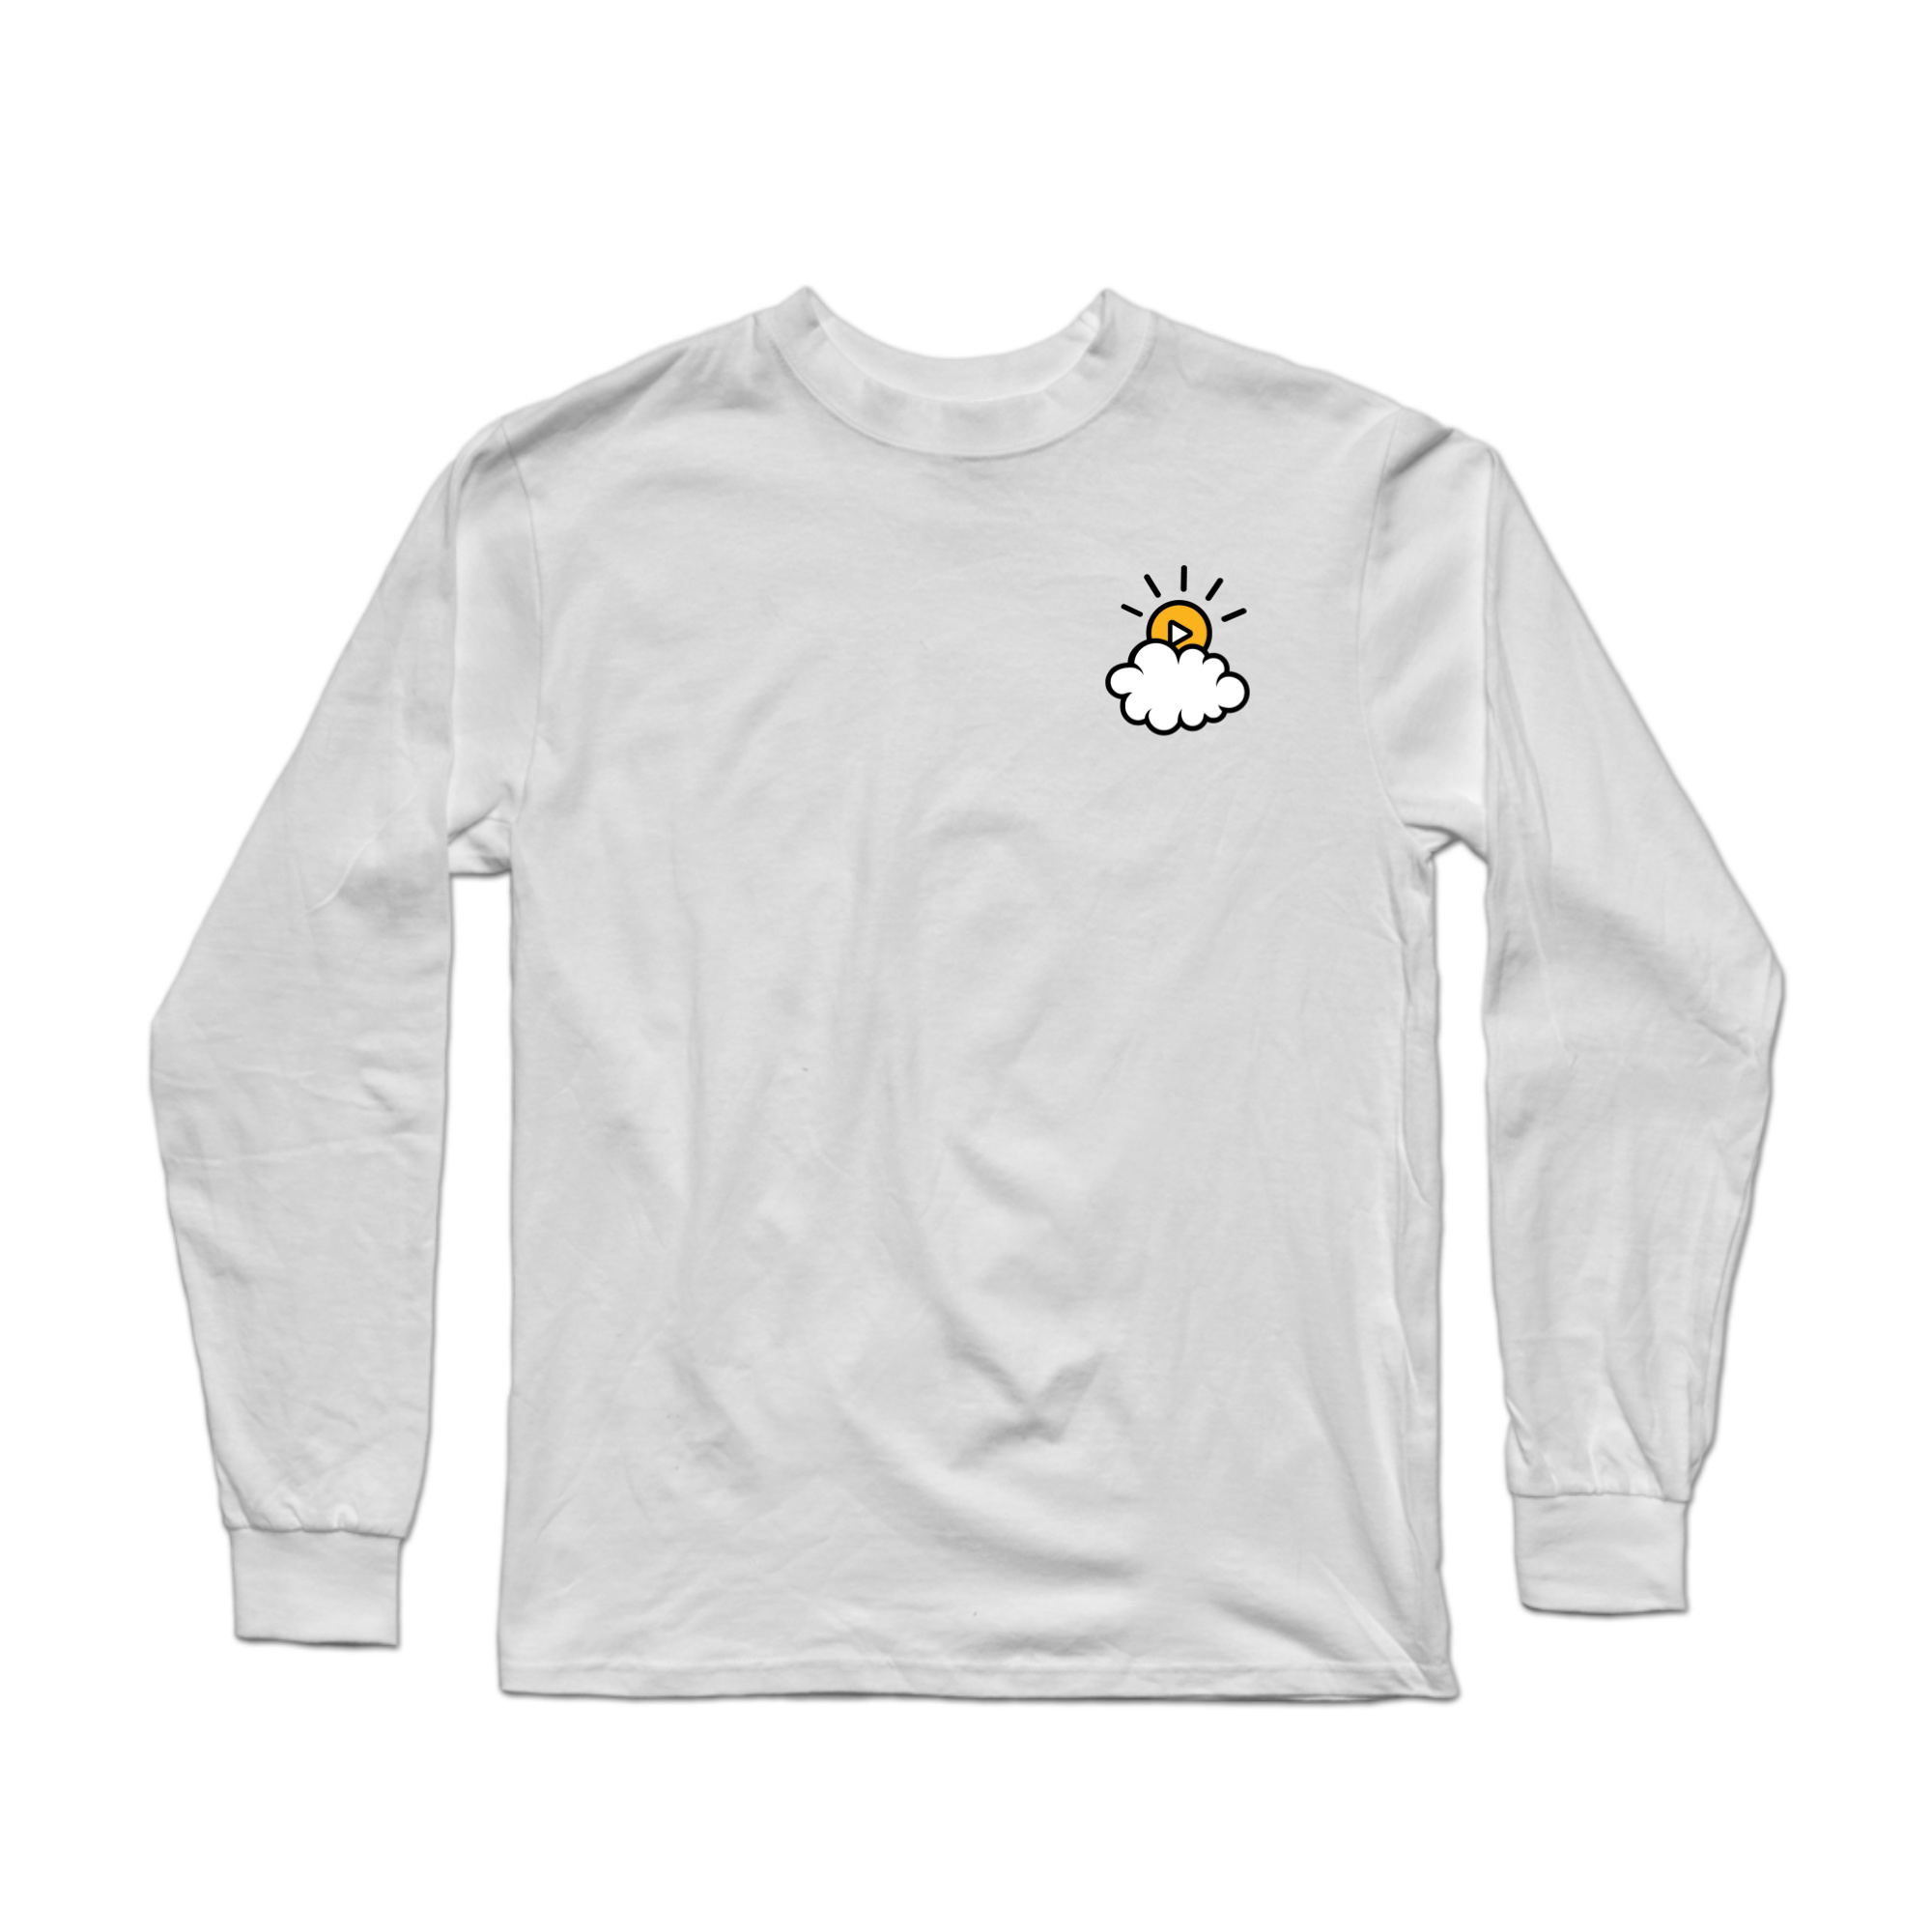 LittleThings Longsleeve Shirt